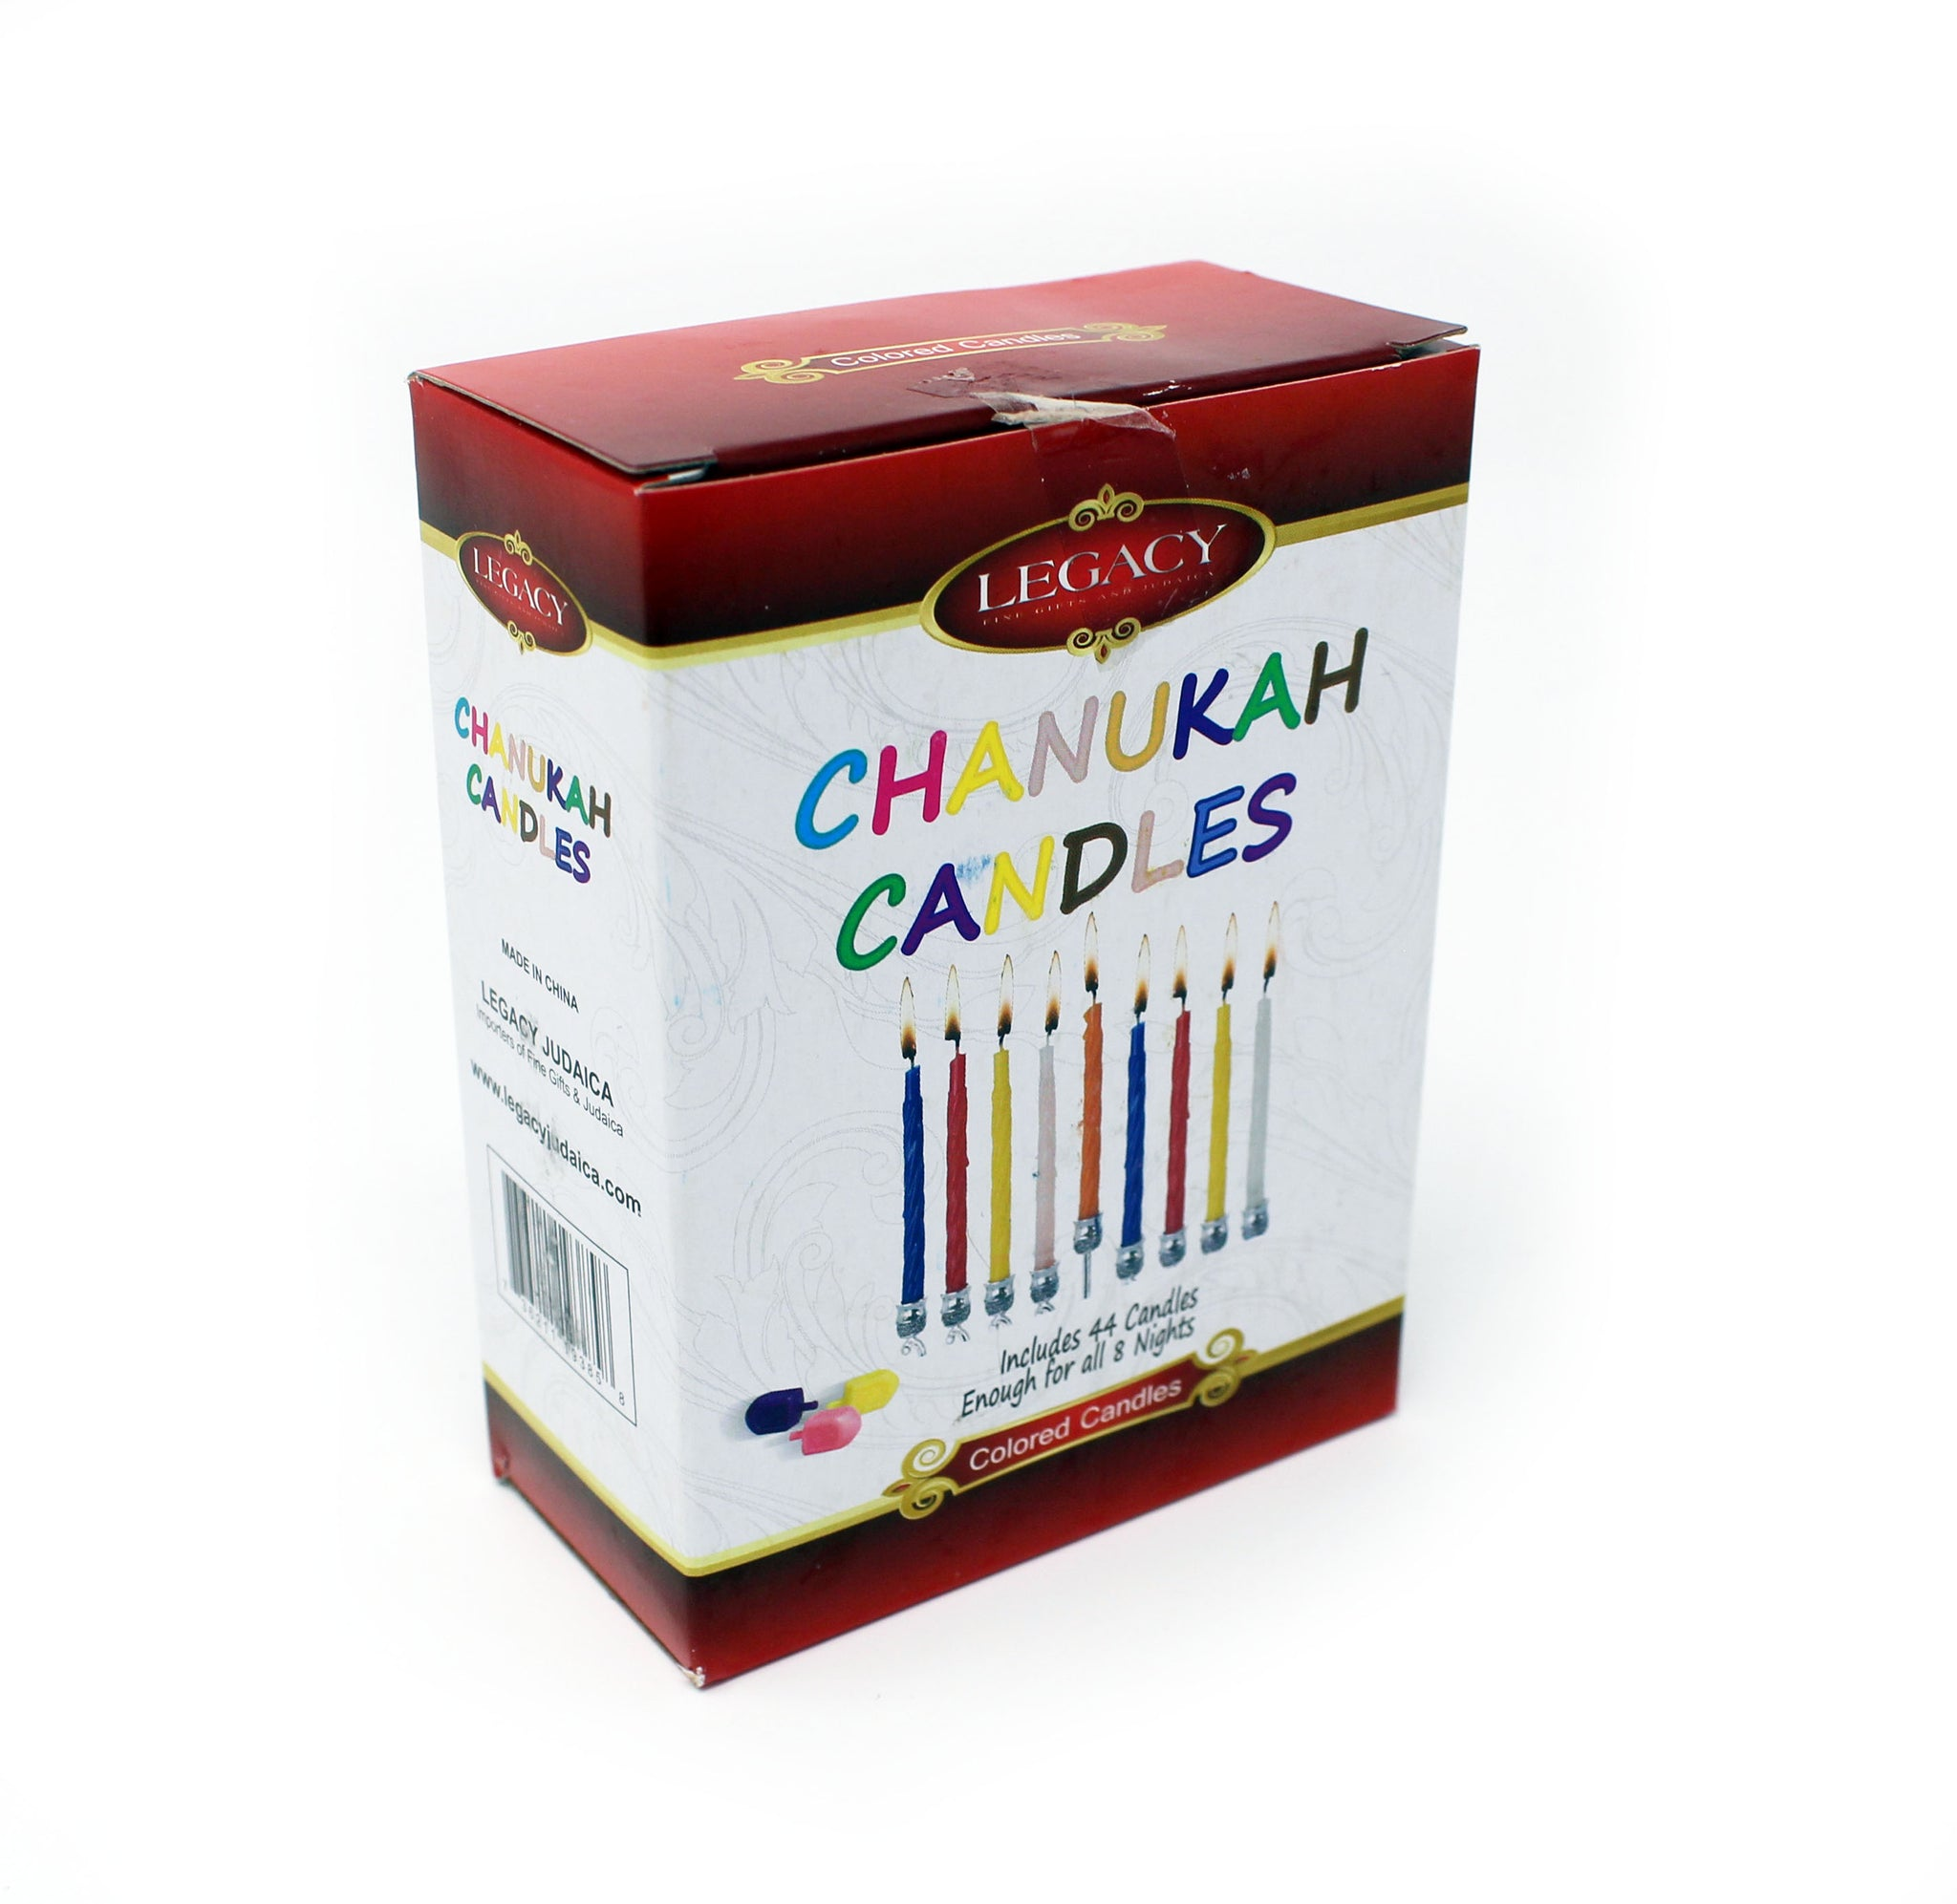 Legacy Chanukah Candles